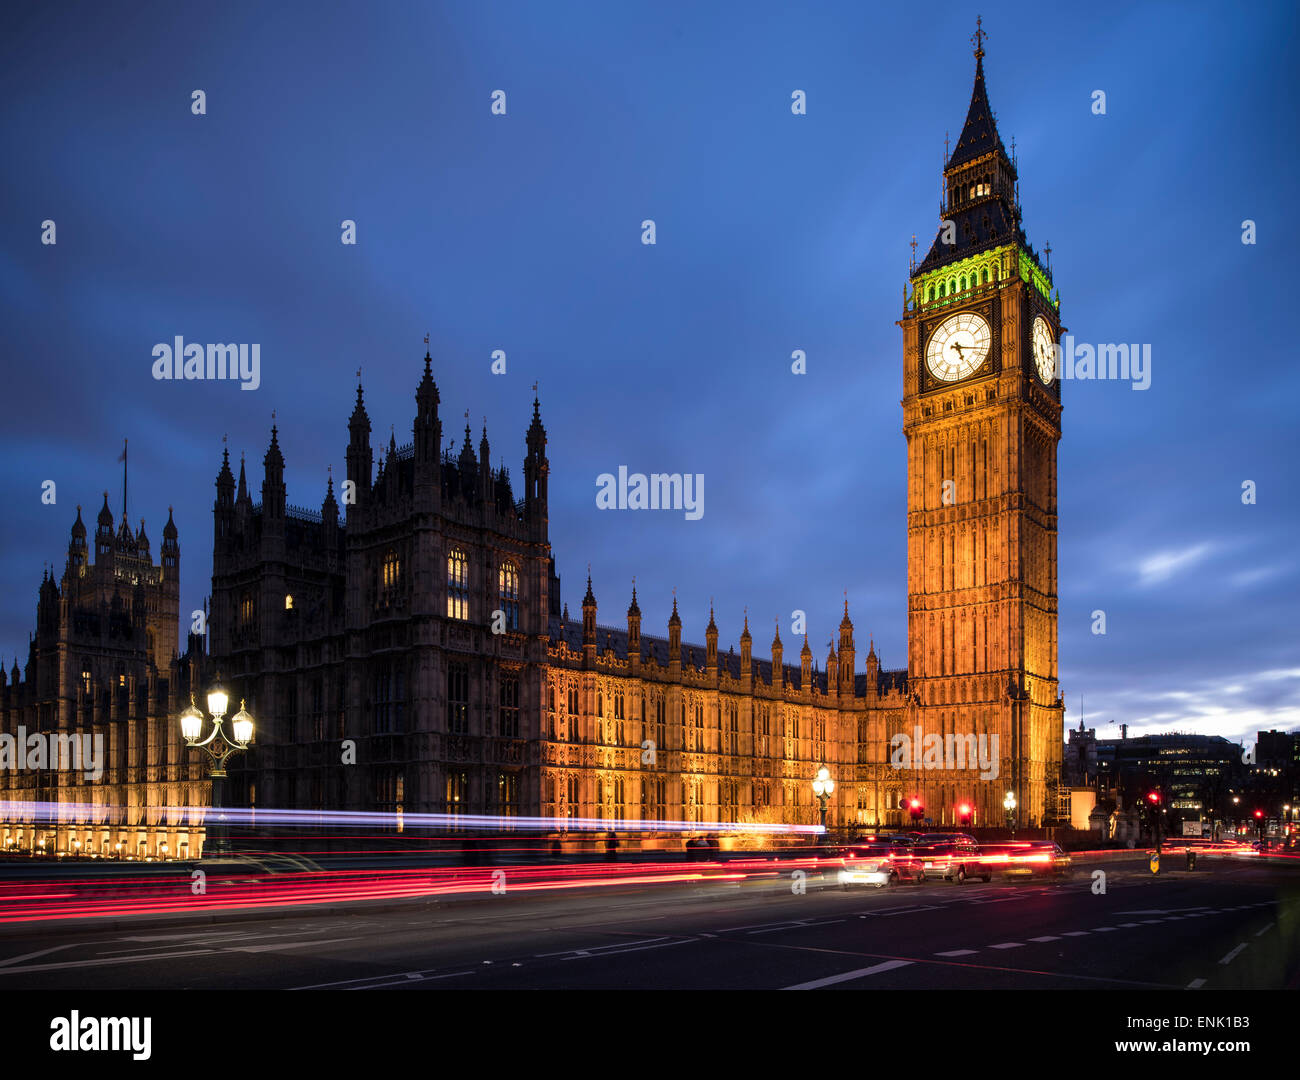 Big Ben, Houses of Parliament, UNESCO World Heritage Site, Westminster, Londres, Angleterre, Royaume-Uni, Europe Photo Stock